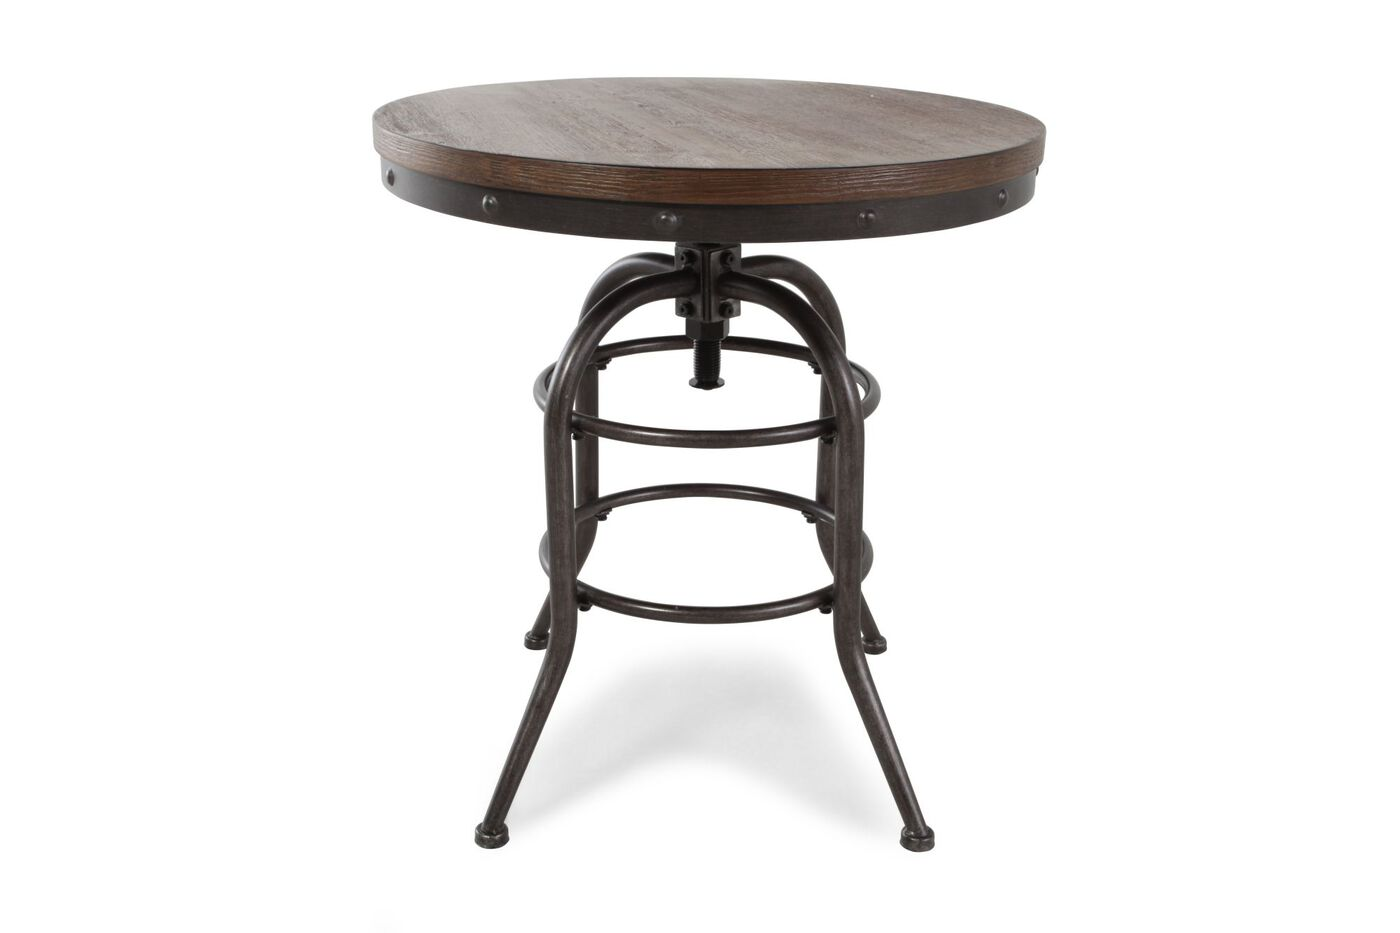 Distressed Round Rustic Farmhouse End Table In Blackened